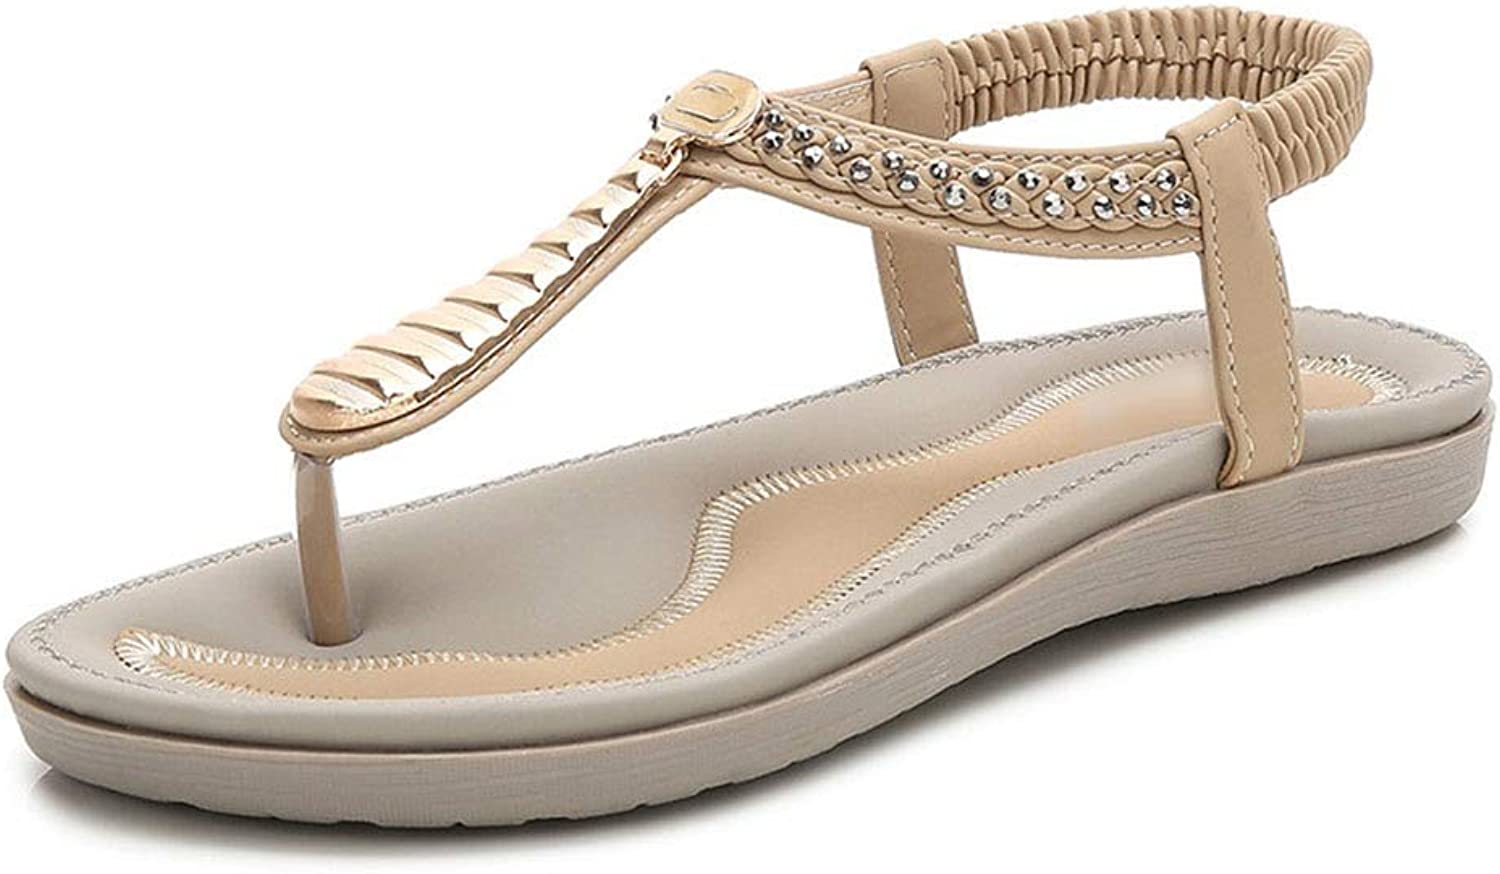 WENNEW Prostrate Bohemian Sandals Women's shoes